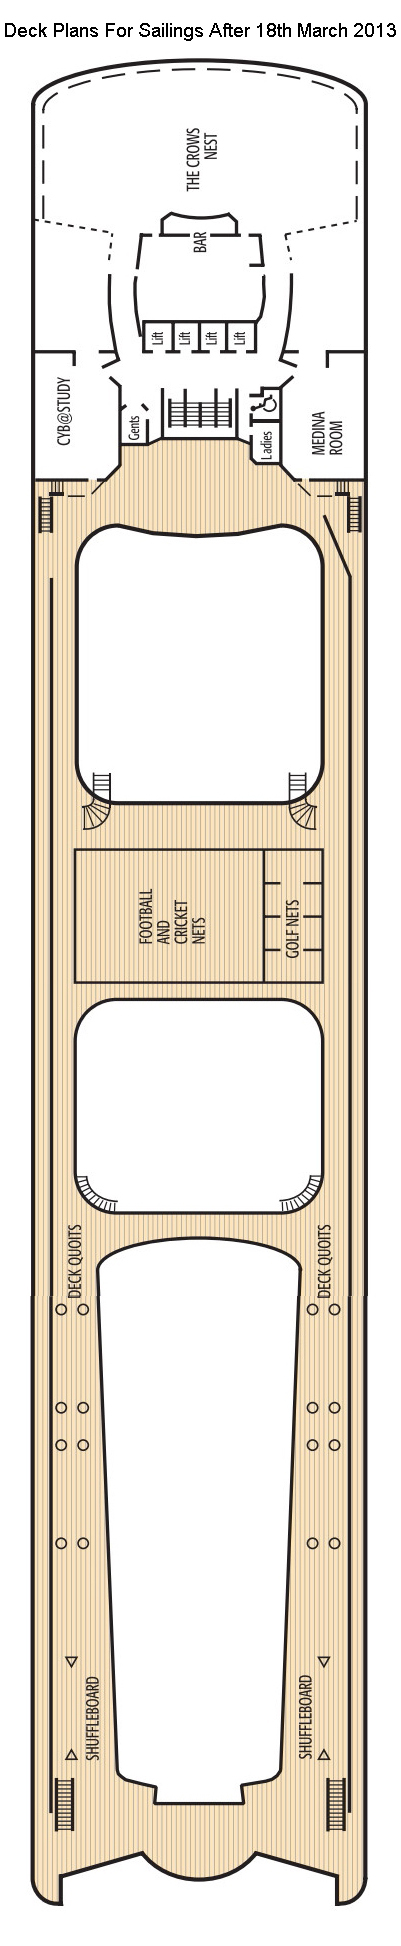 Oriana Sun Deck layout